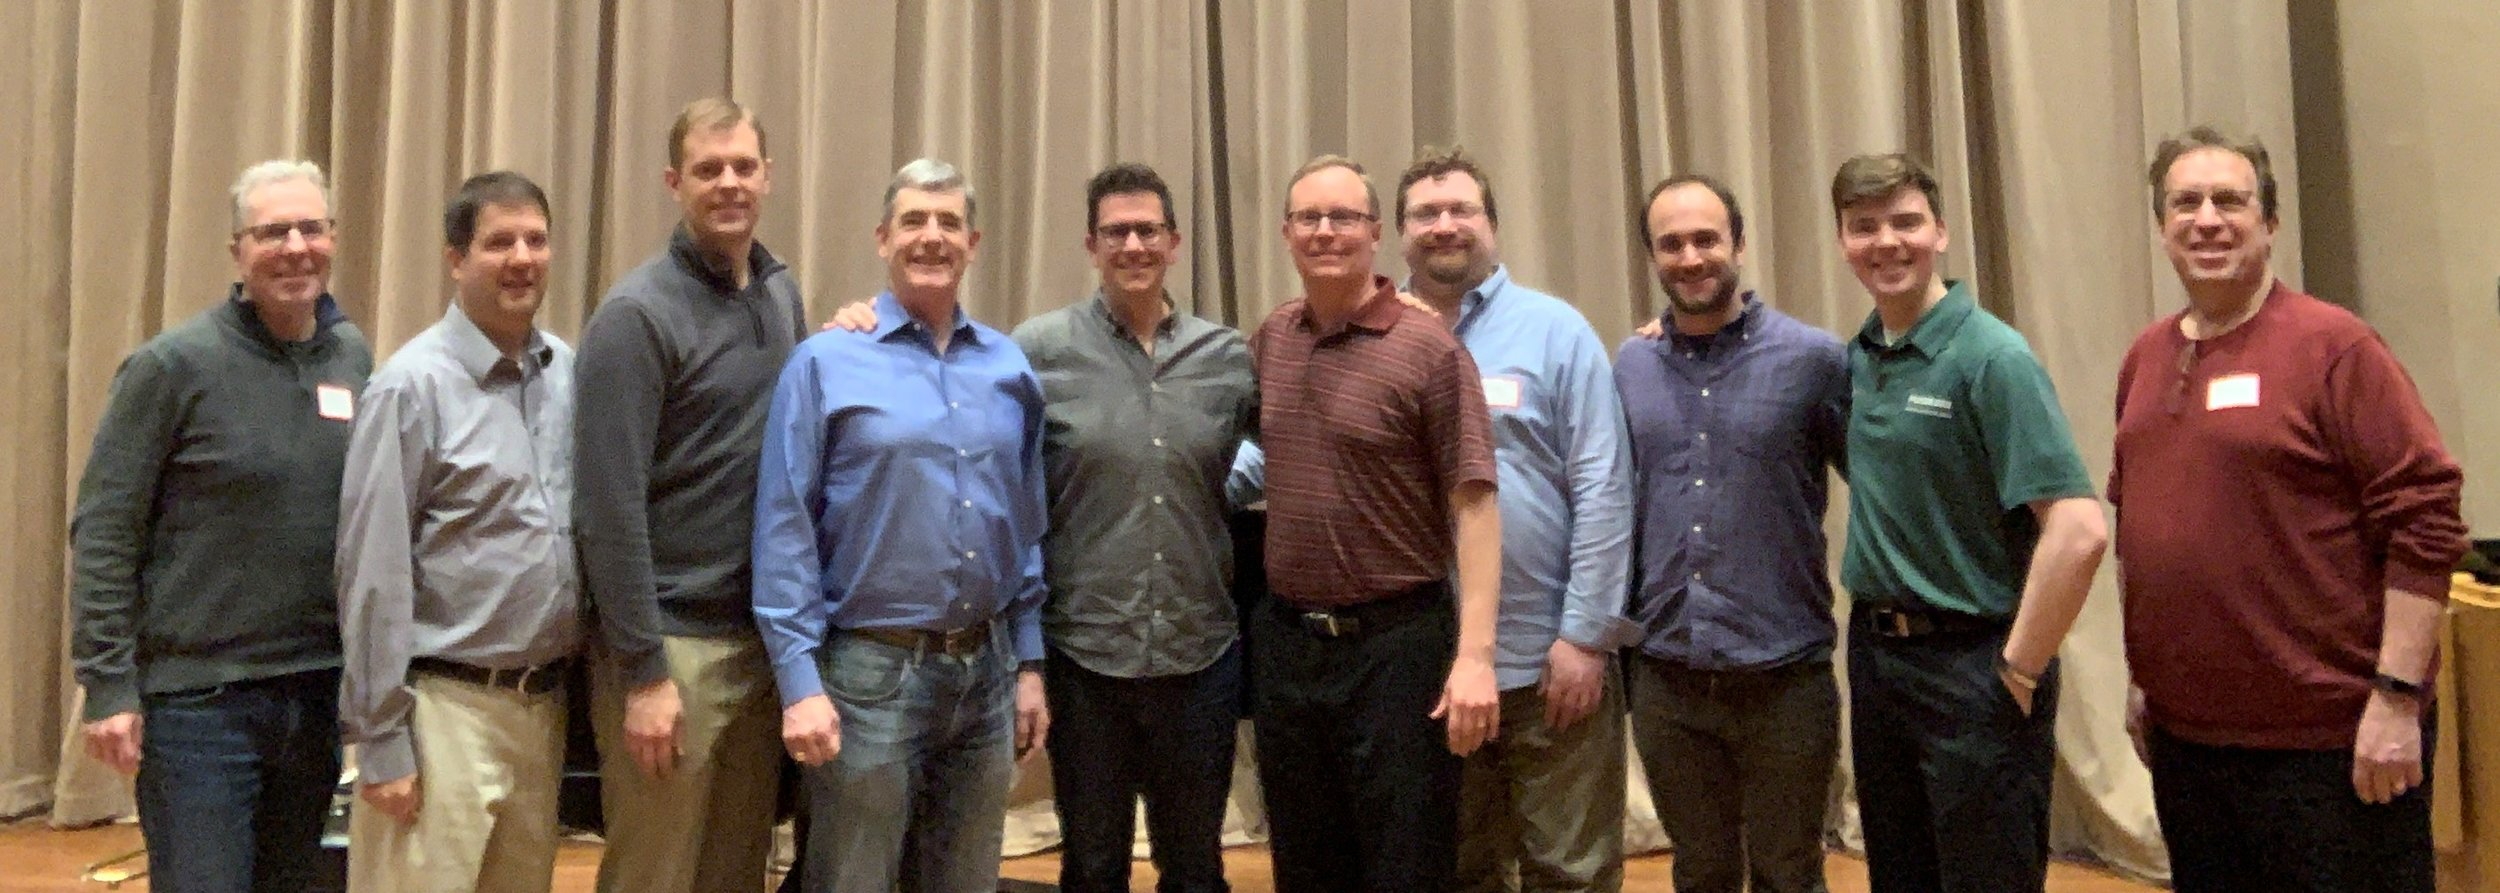 Tim Higgins and the Northshore Concert Band trombones (left to right): Greg Glover, Brad Say, Bryan Tipps, Joe Schorer, Tim Higgins, Andy Burkemper, Dan DiCesare, DJ Taylor, Mitchell Clark and Paul Bauer. Not pictured: Joe Moore